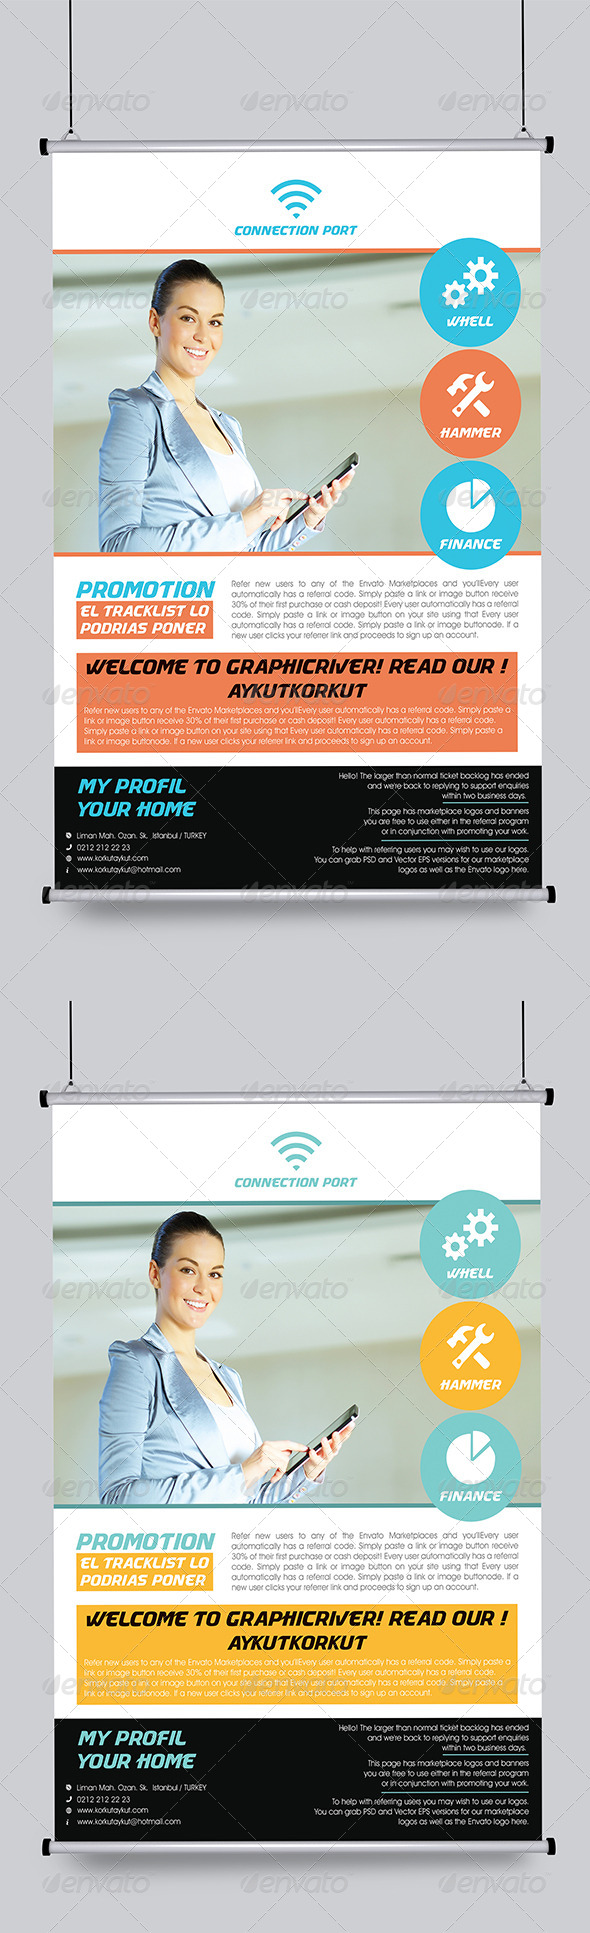 Connection Port Flyer Template - Corporate Flyers